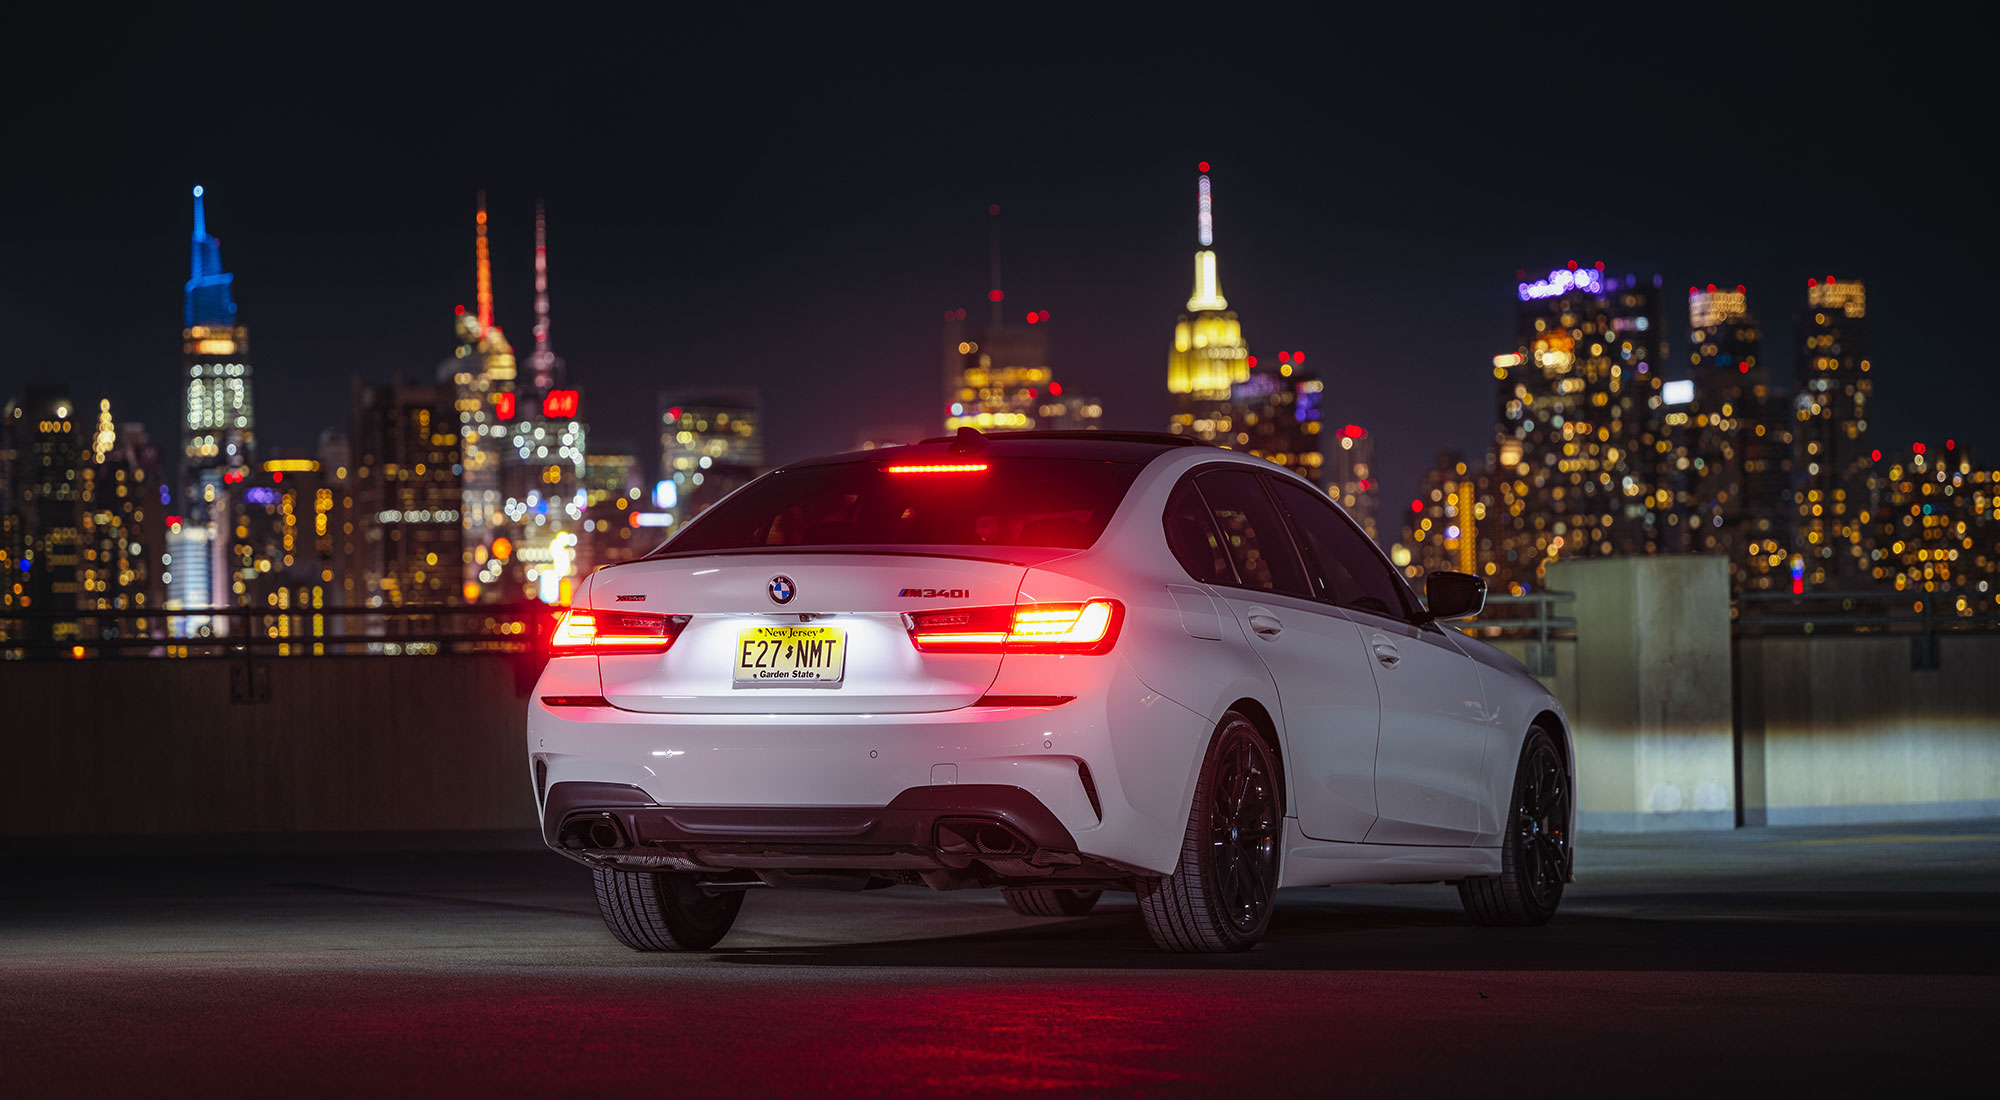 Tracking your new BMW